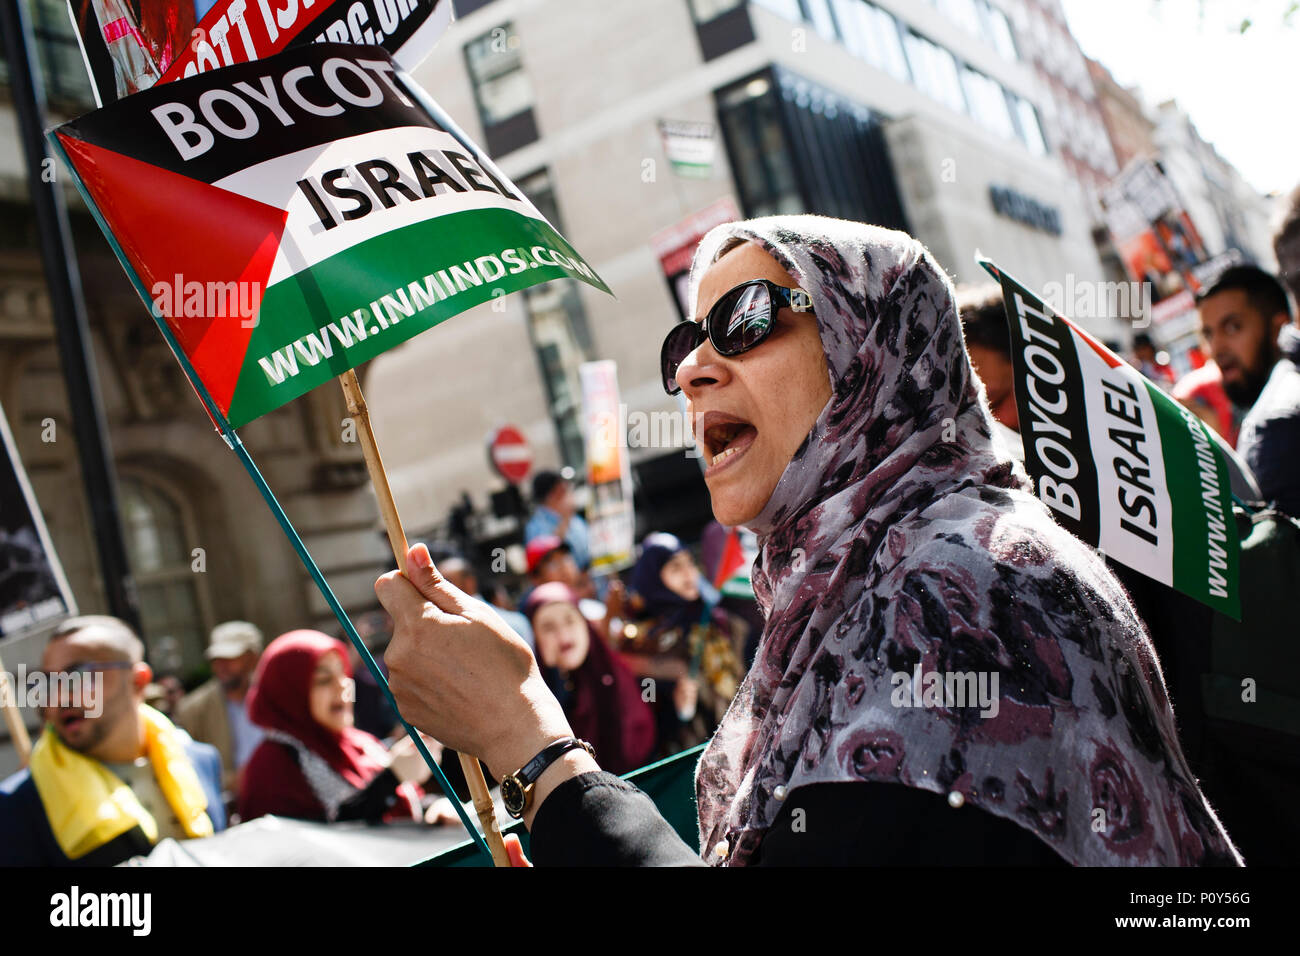 A woman holds a 'Boycott Israel' flag during the annual pro-Palestine/anti-Israel Al Quds Day demonstration in central London. The demonstration is notably controversial in the city for the flying of Hizbullah flags that typically takes place during the course of it. - Stock Image